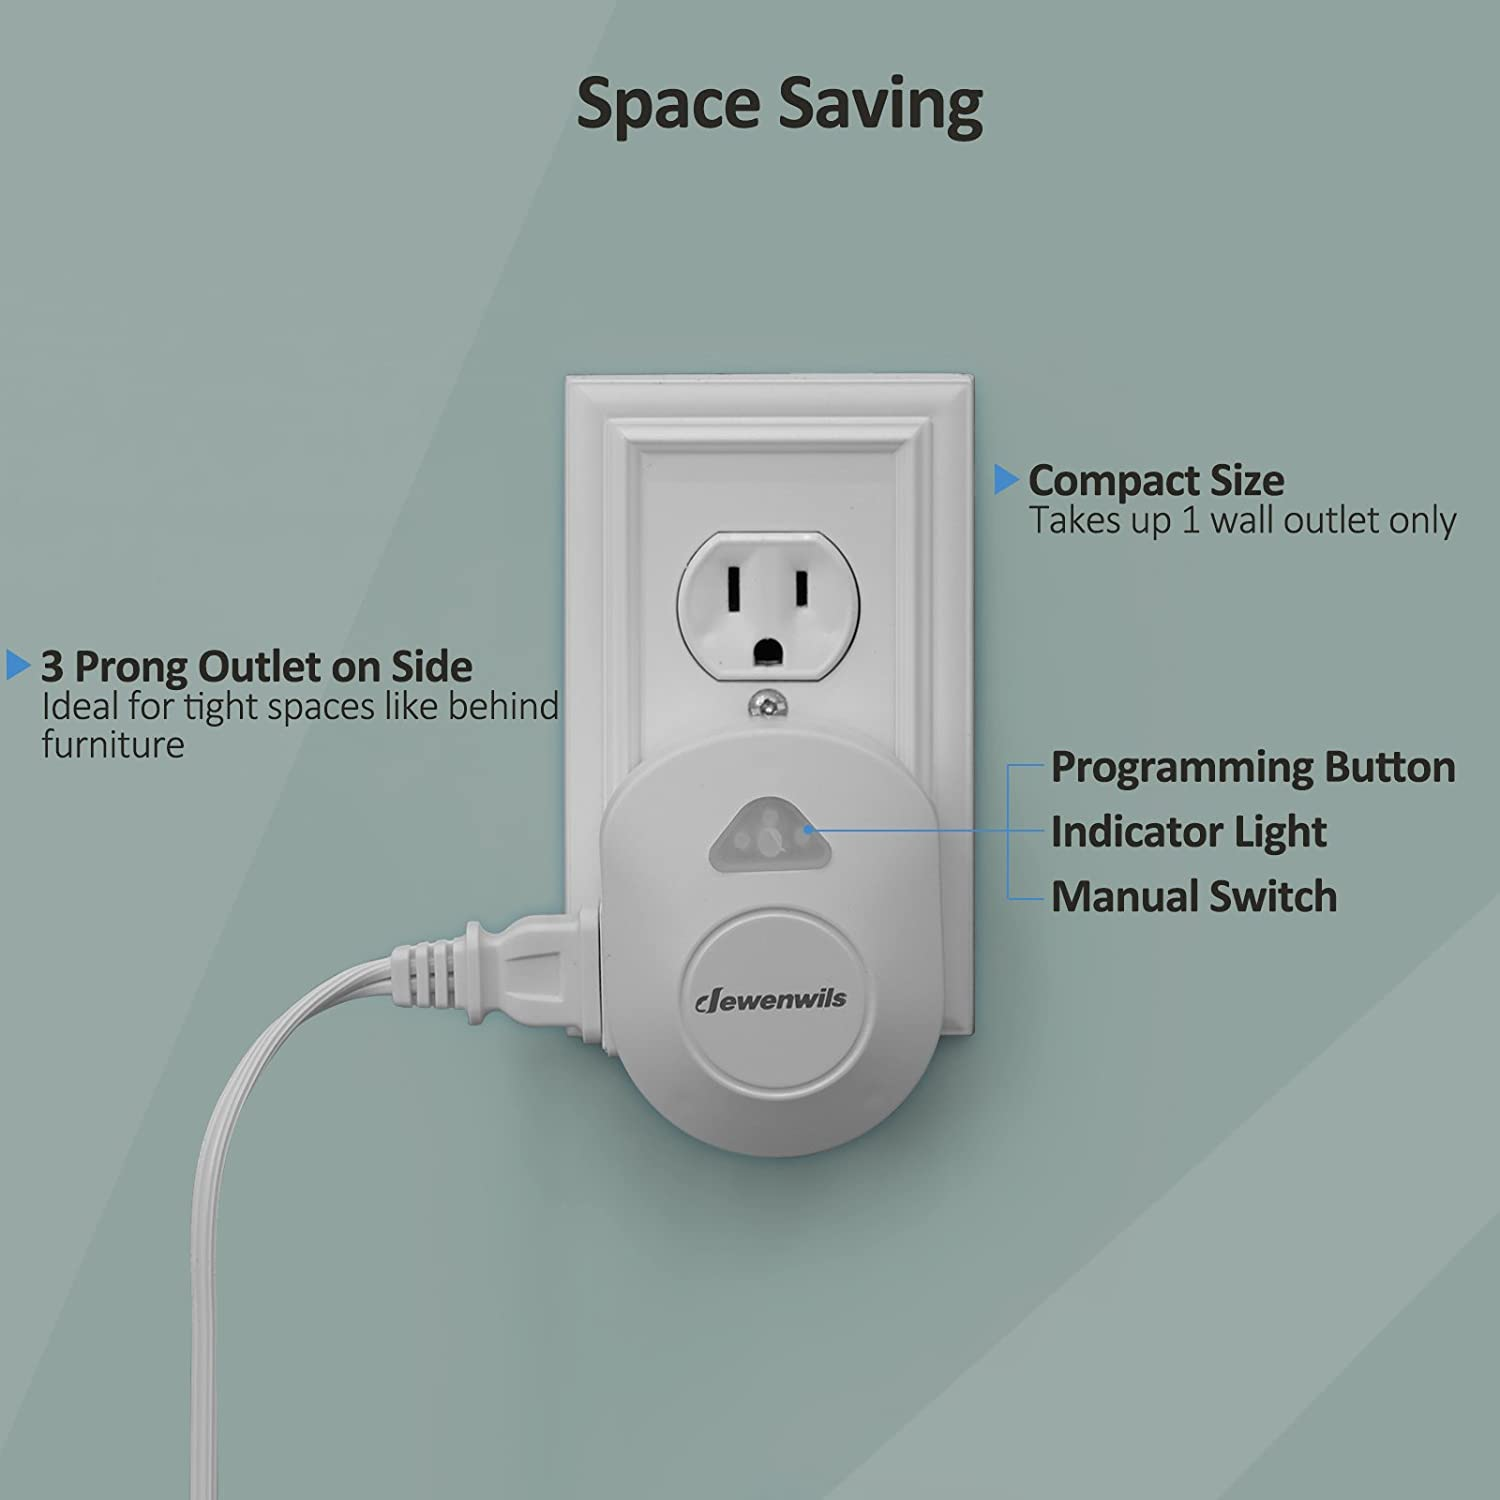 Dewenwils Wireless Wall Switch Remote Control Outlet Electrical Plug And Switchceilinglightjpg On Off Light For Lamp No Interference 15 Amp Heavy Duty 100 Rf Range